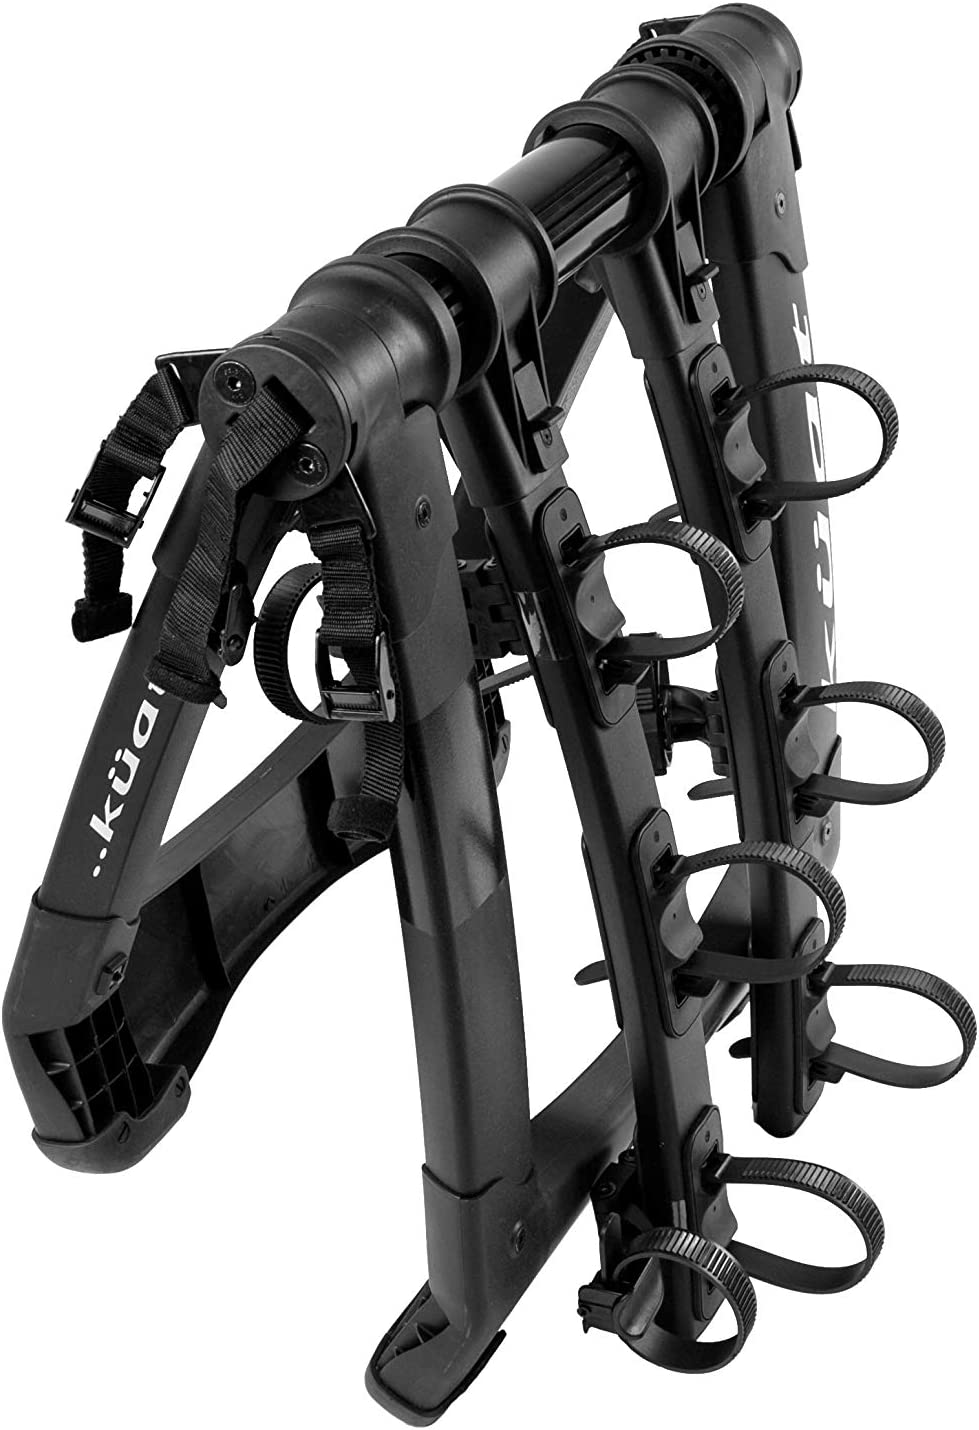 Kuat Highline Trunk Bike Rack Carrier